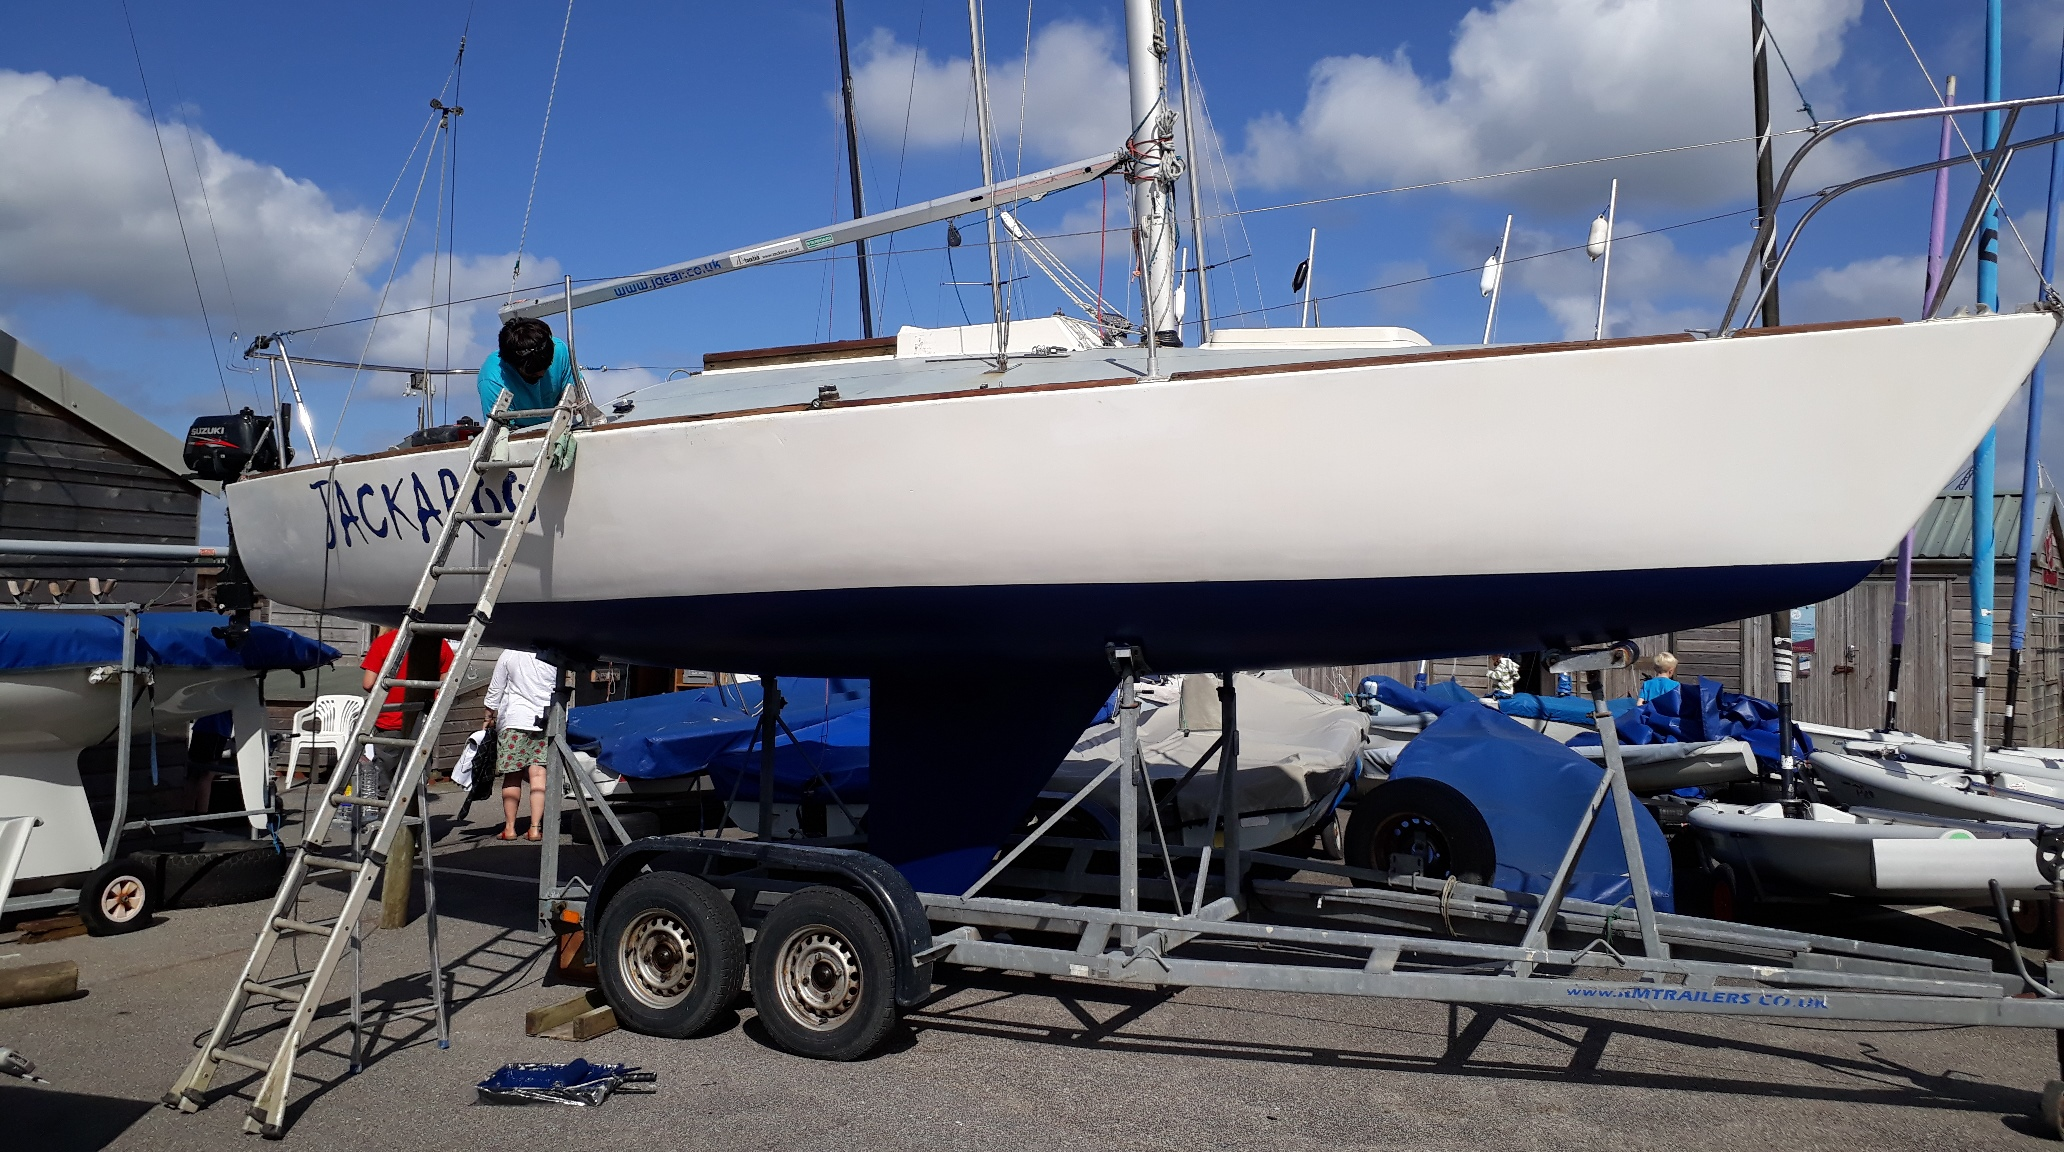 Accessible sailing boat Jackaroo Mylor Falmouth